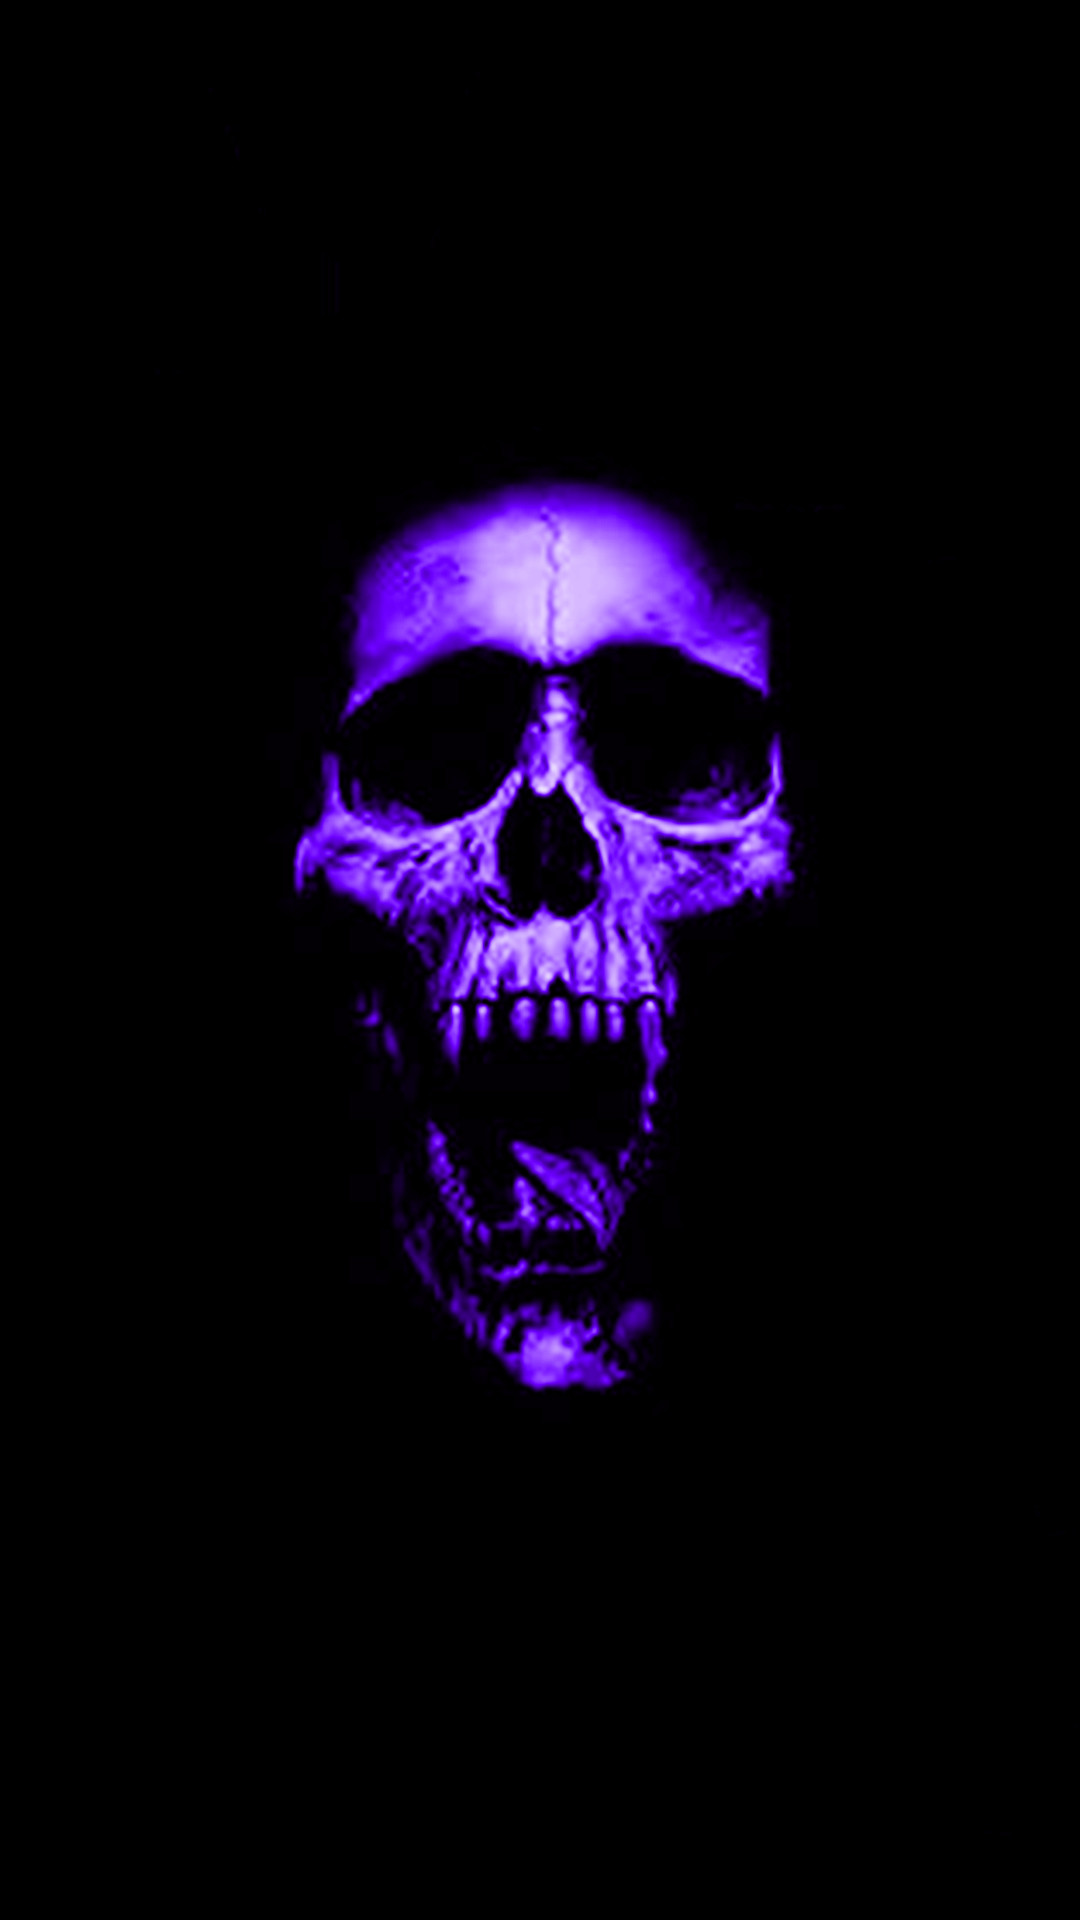 Purple Skull Wallpaper (61+ images)